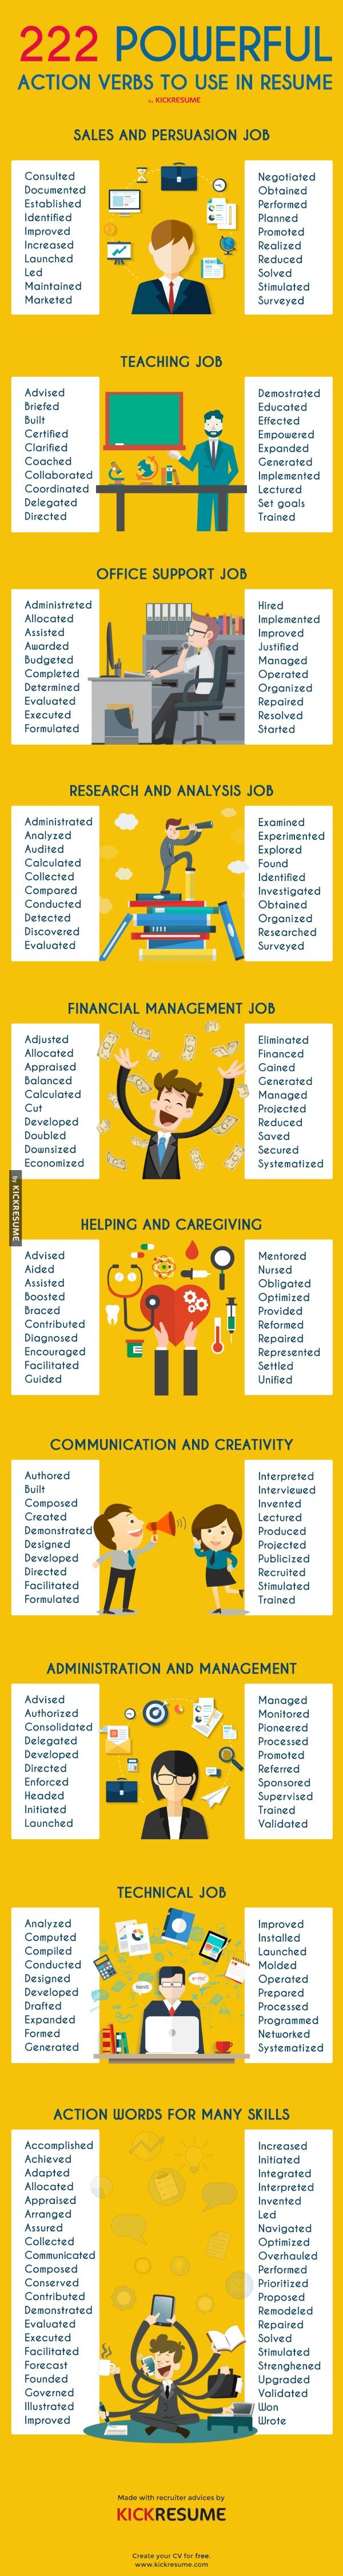 Infographic Resume Cheat Sheet 222 Action Verbs To Use